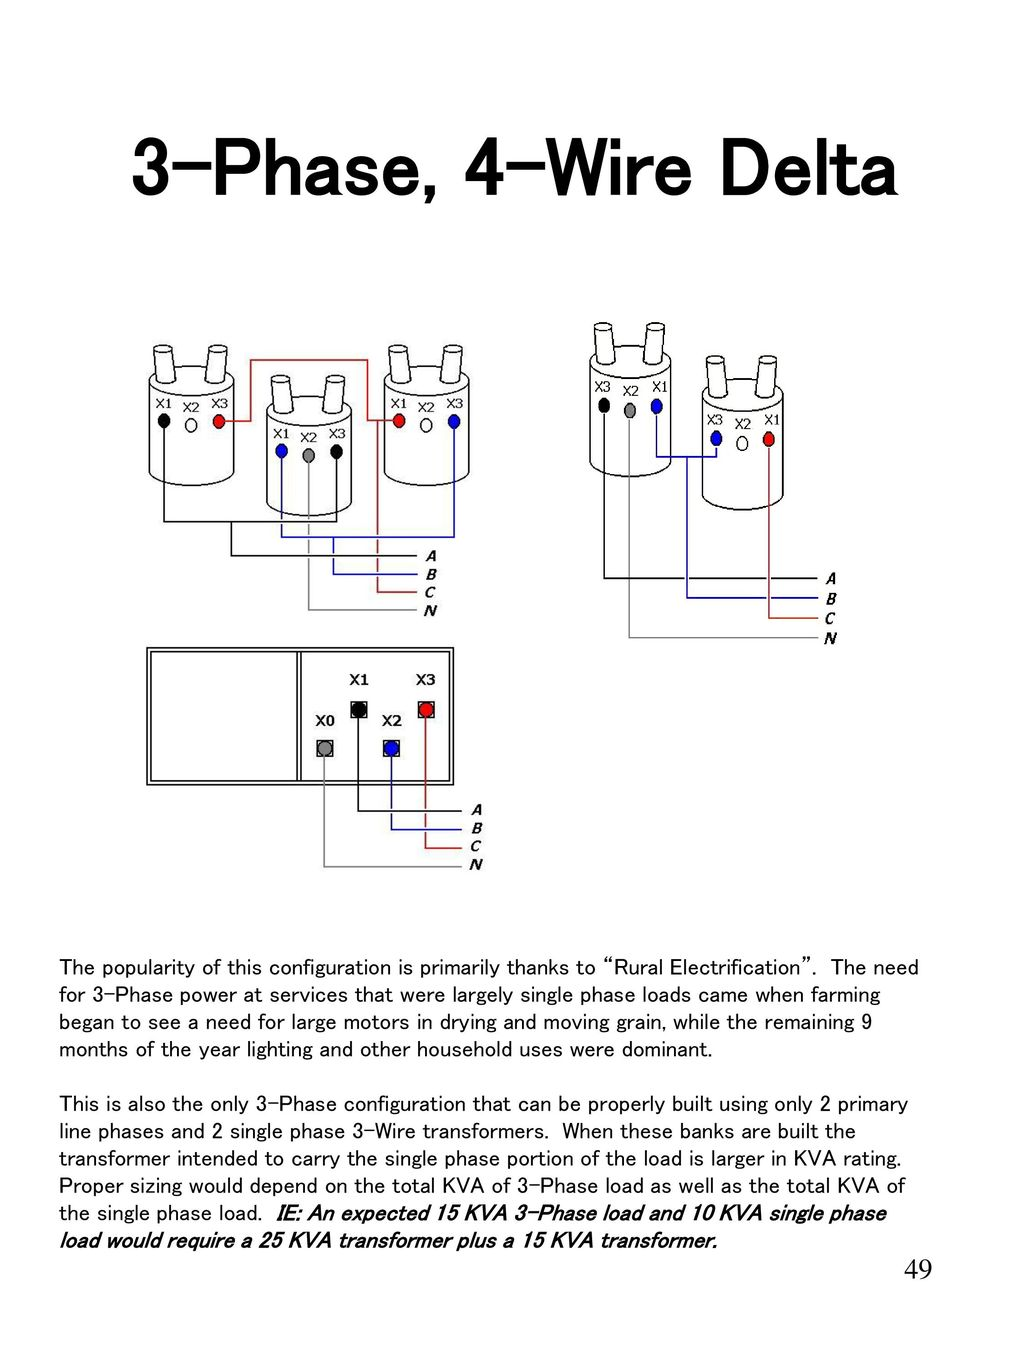 Metering In Todays World Ppt Download Find Installing Outlets Electrifying Try Wiring Diagrams For The 3 Phase 4 Wire Delta